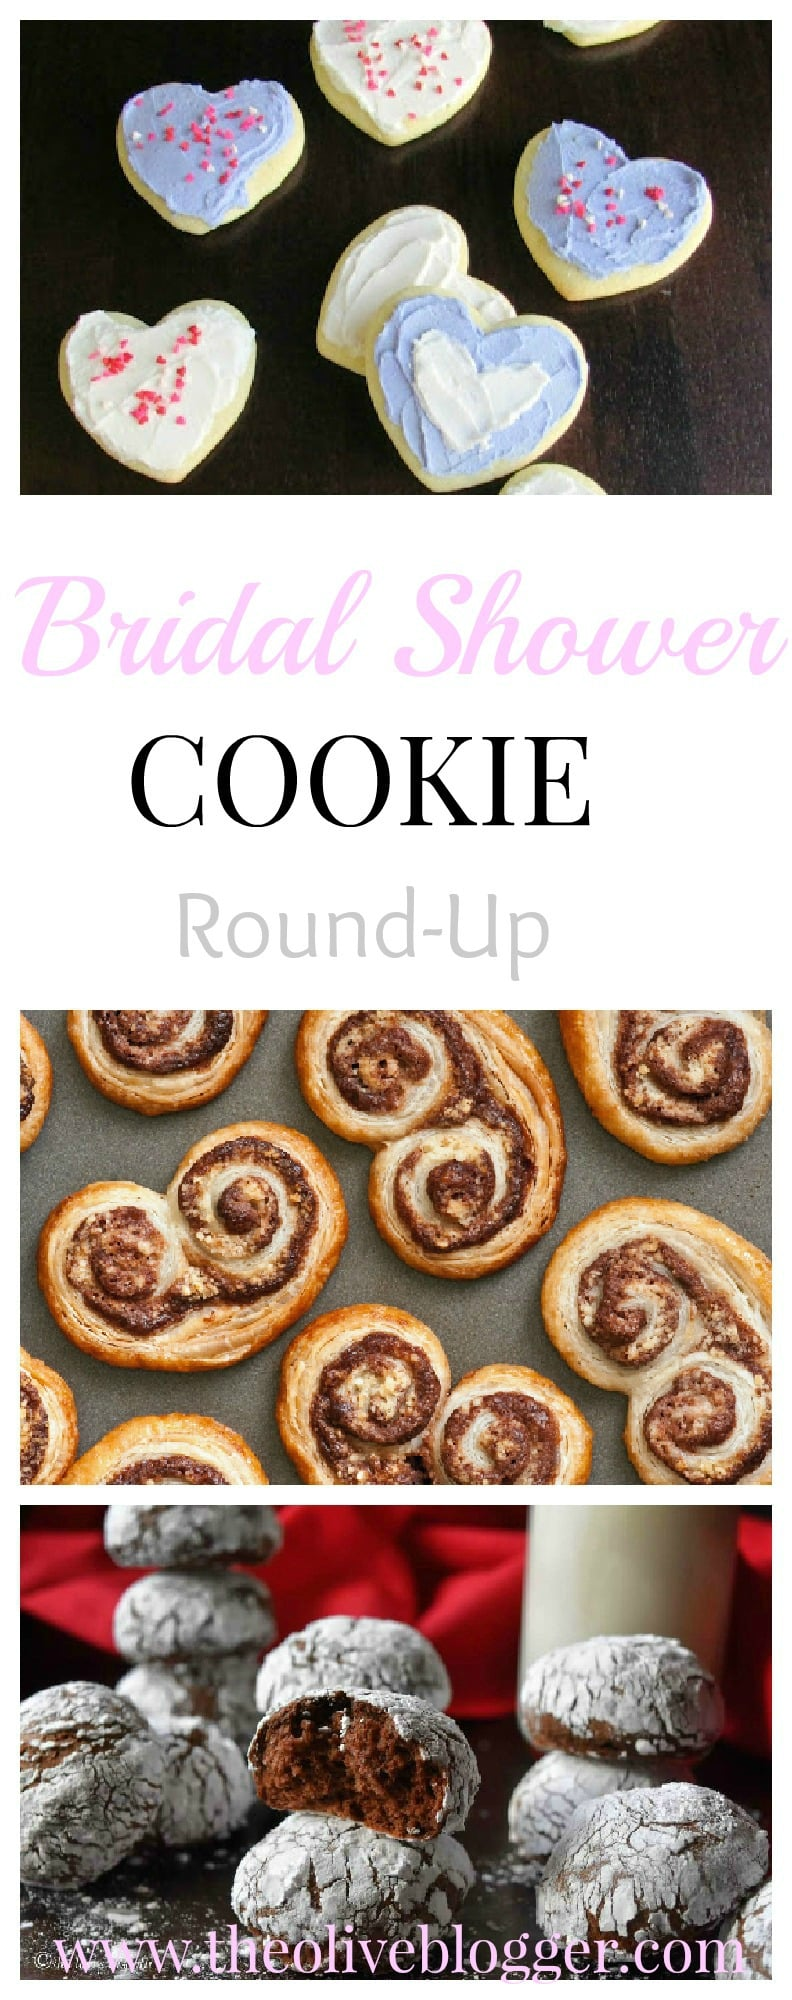 A fun round-up of cookie recipes for bridal showers! Featuring both classic cookies and new favorites, there is a cookie for everyone!